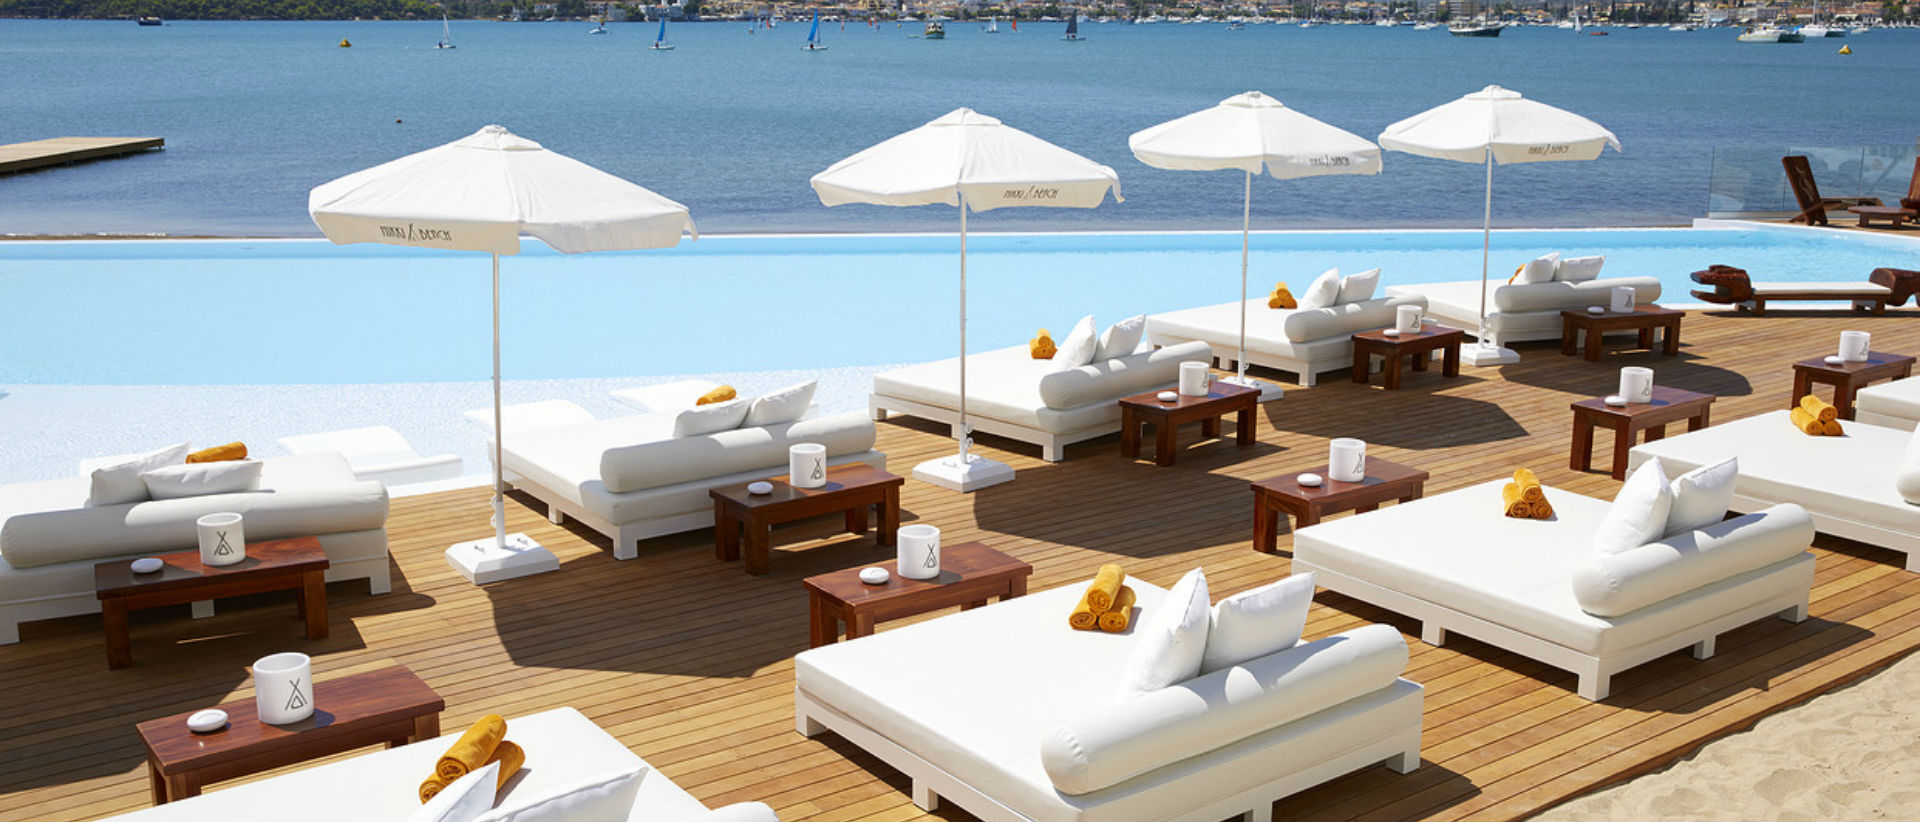 Realize your own Ultimate Nikki Beach Experience.